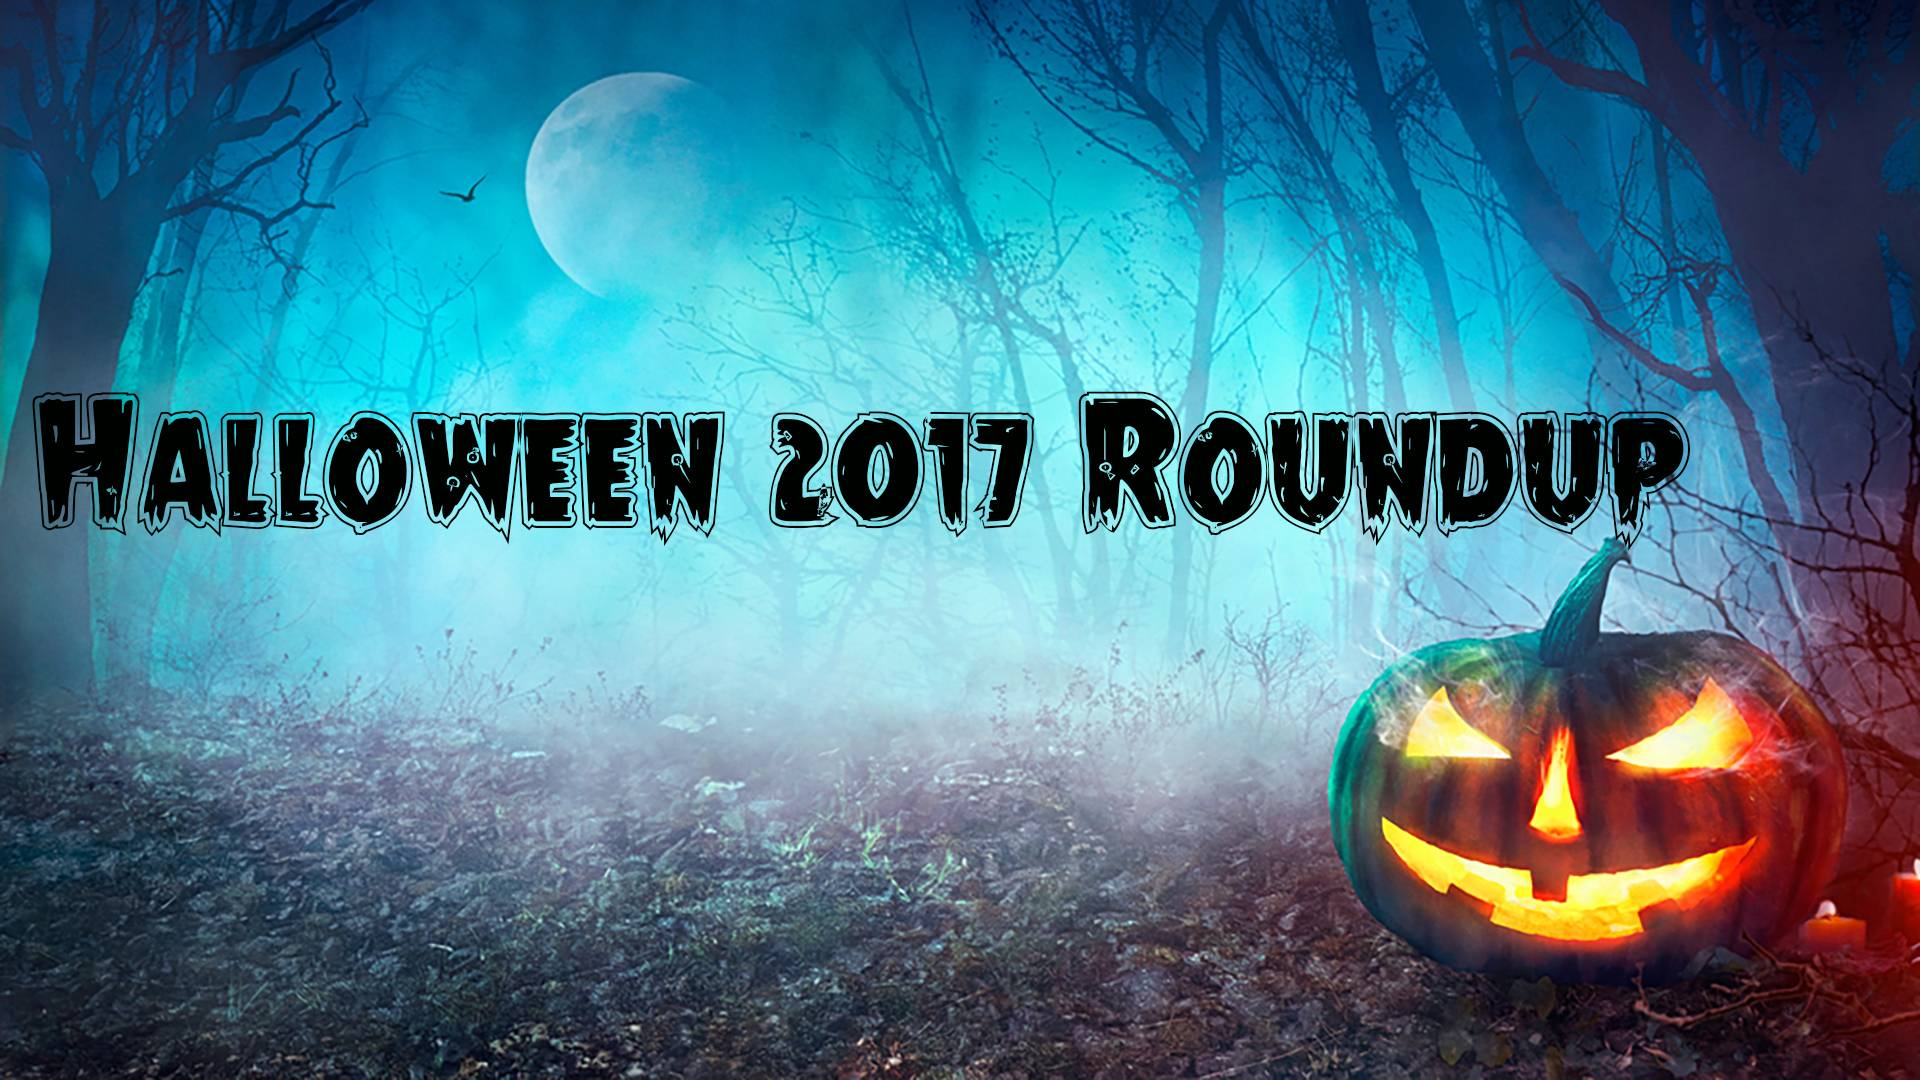 halloween roundup 2017: your guide to amarillo-area holiday fun for